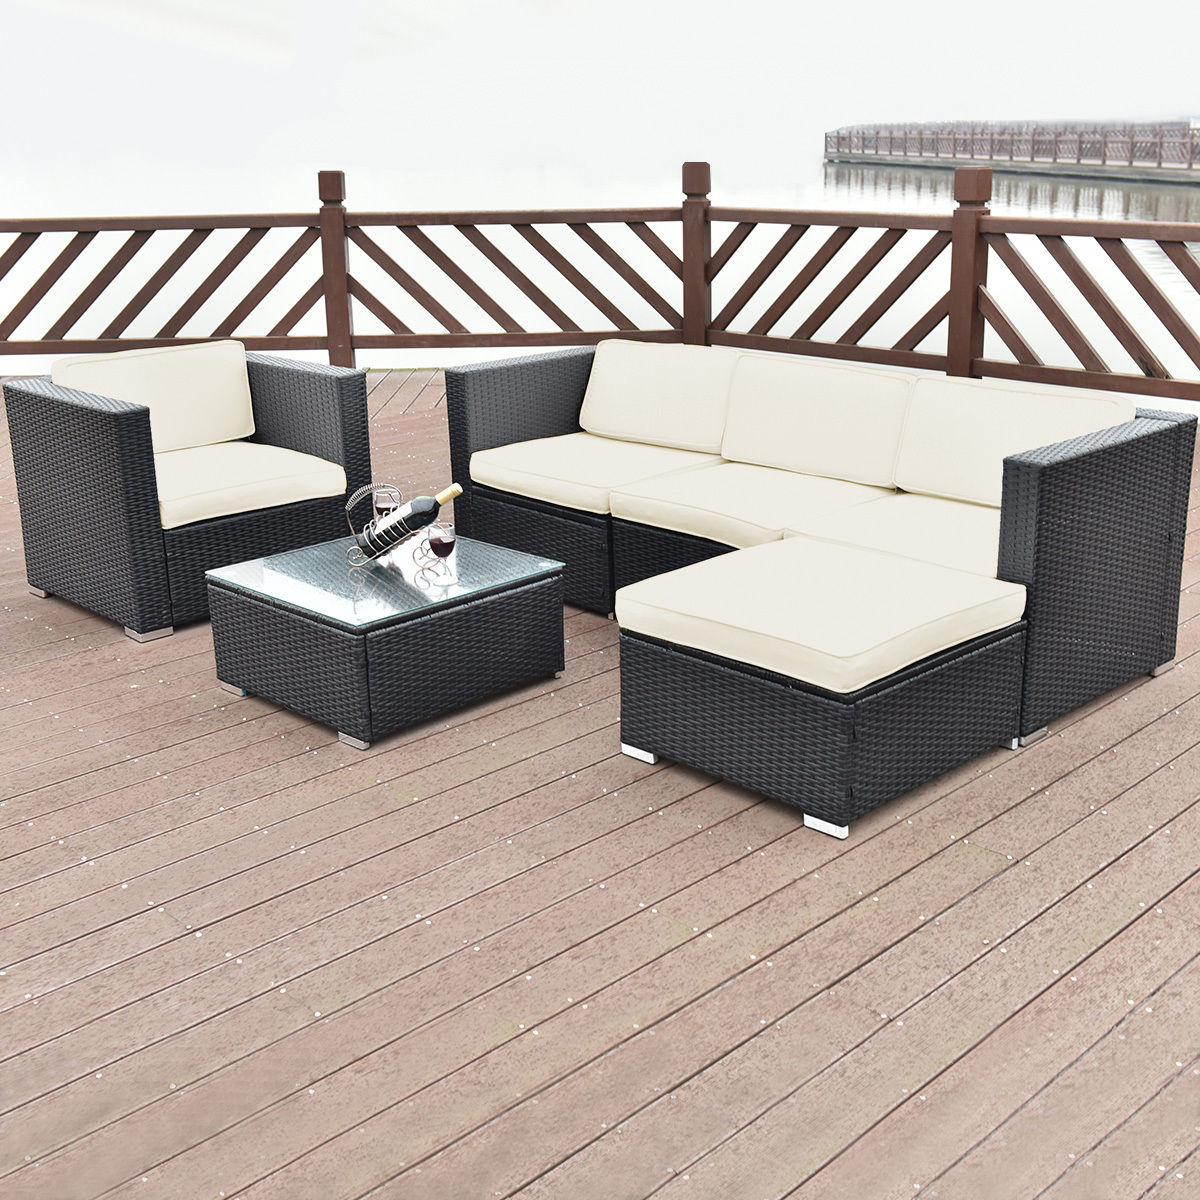 Costway 6 PC Patio Rattan Furniture Set Sectional Cushioned Seat